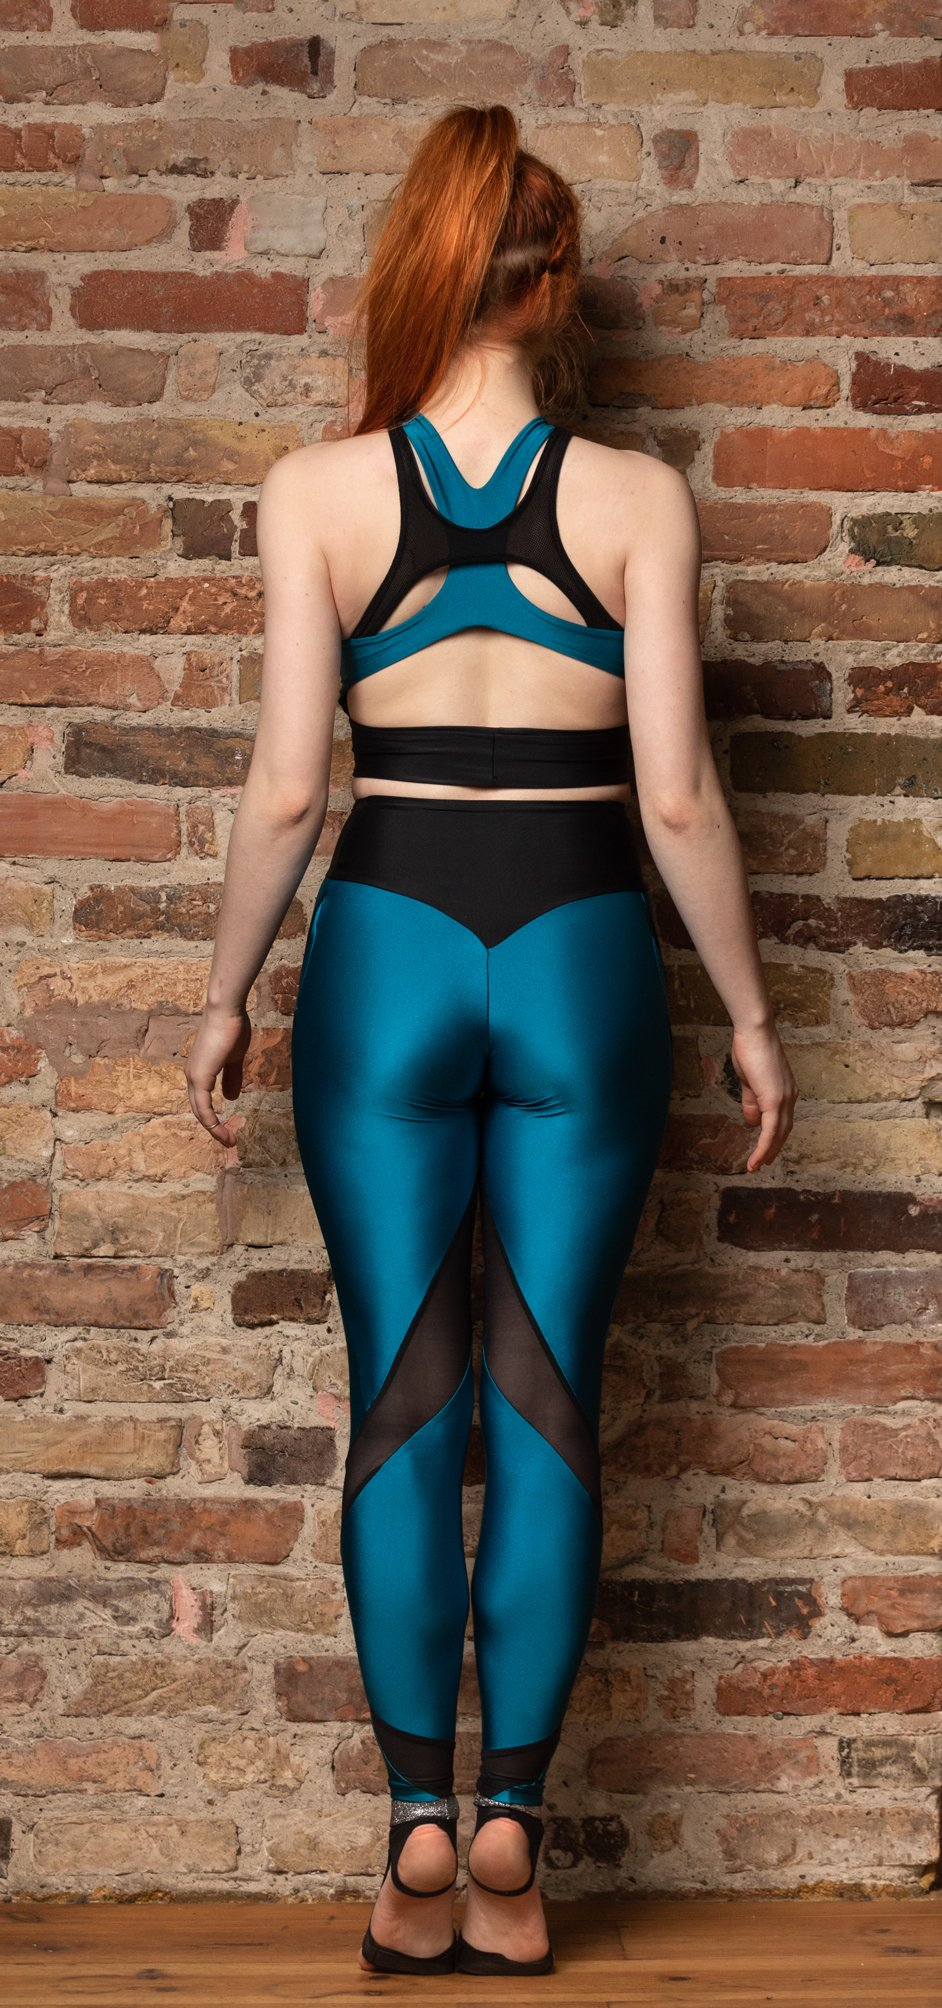 leggings with transparent inserts for yoga